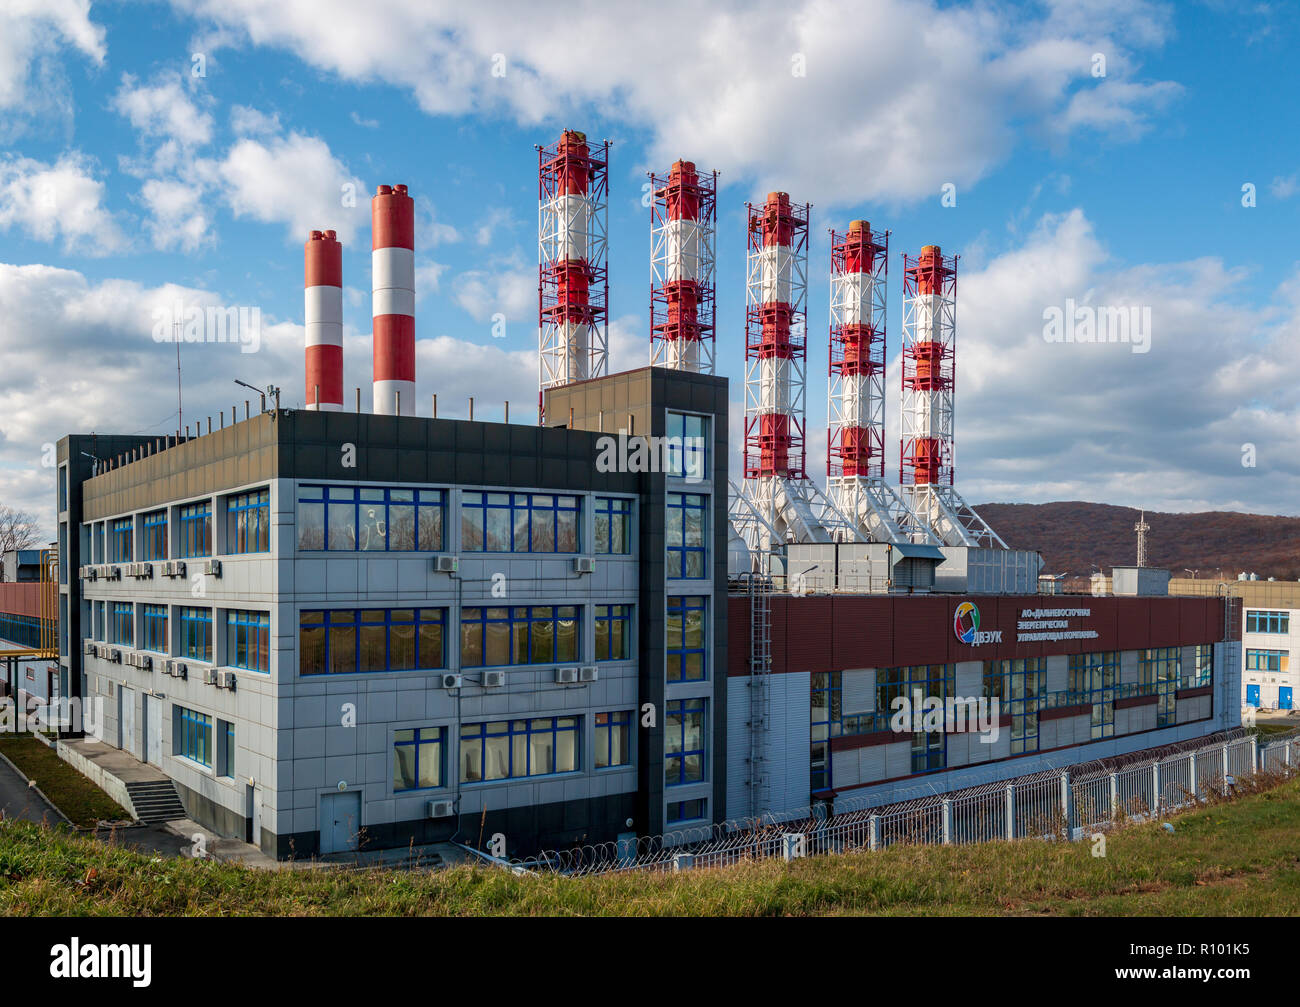 VLADIVOSTOK, RUSSIA - OCTOBER 27, 2018: Building of the Far Eastern Energy Management Company next to FEFU, on Russky Island in Vladivostok - Stock Image